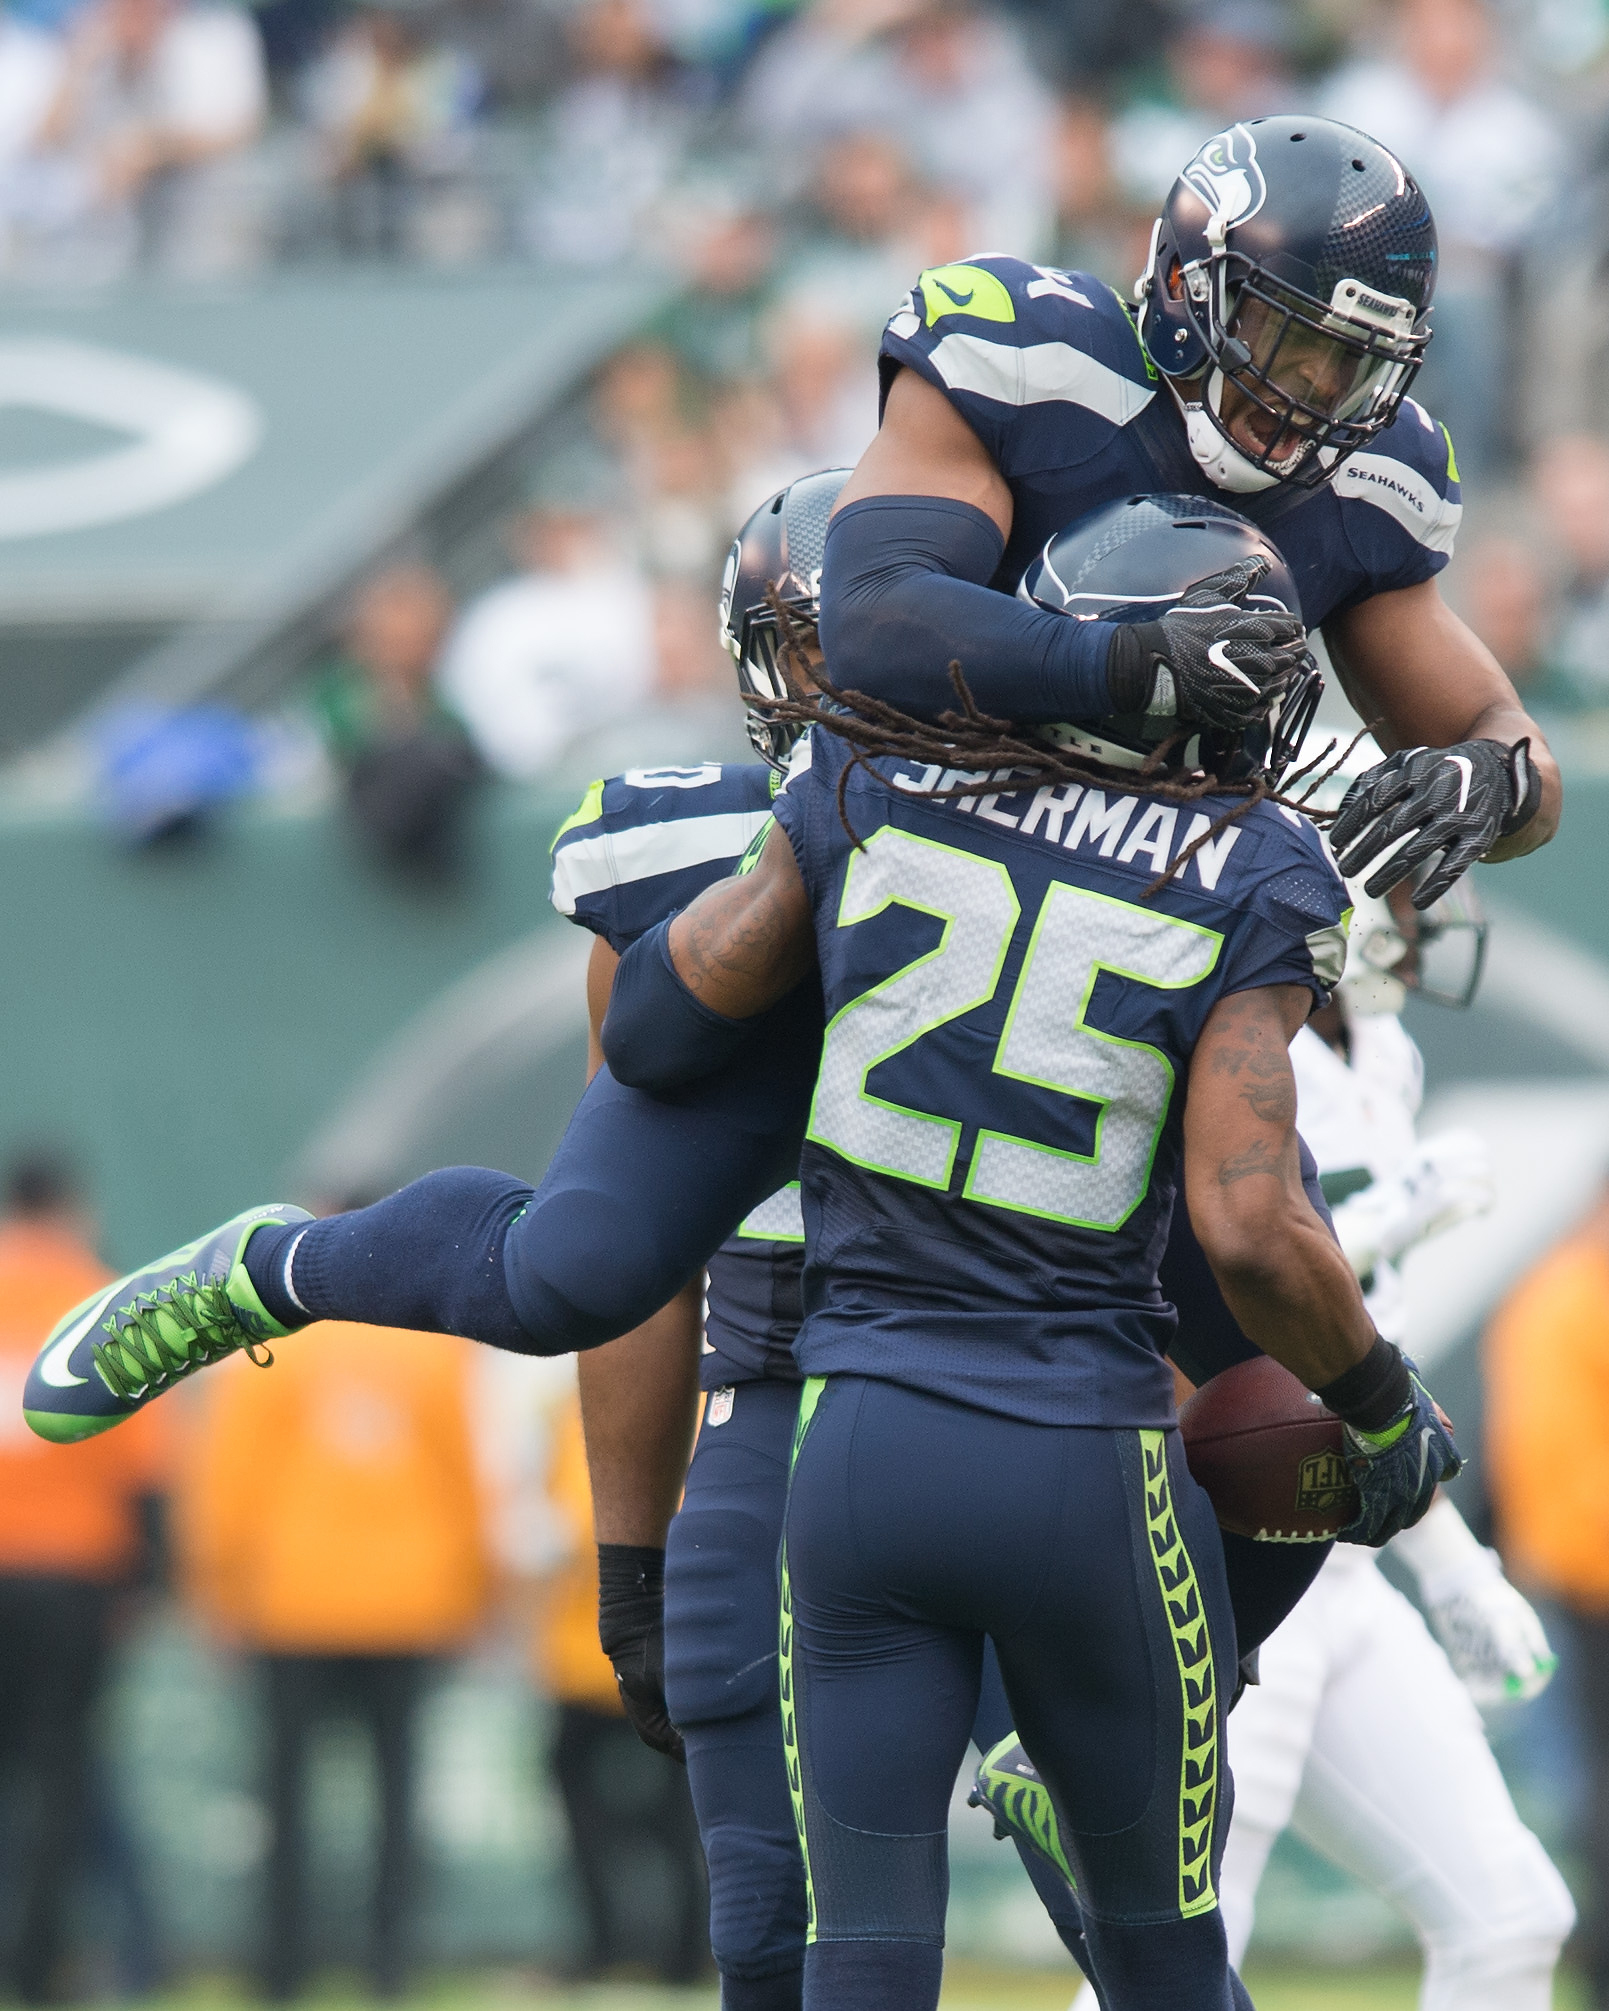 NFL: Seattle Seahawks at New York Jets